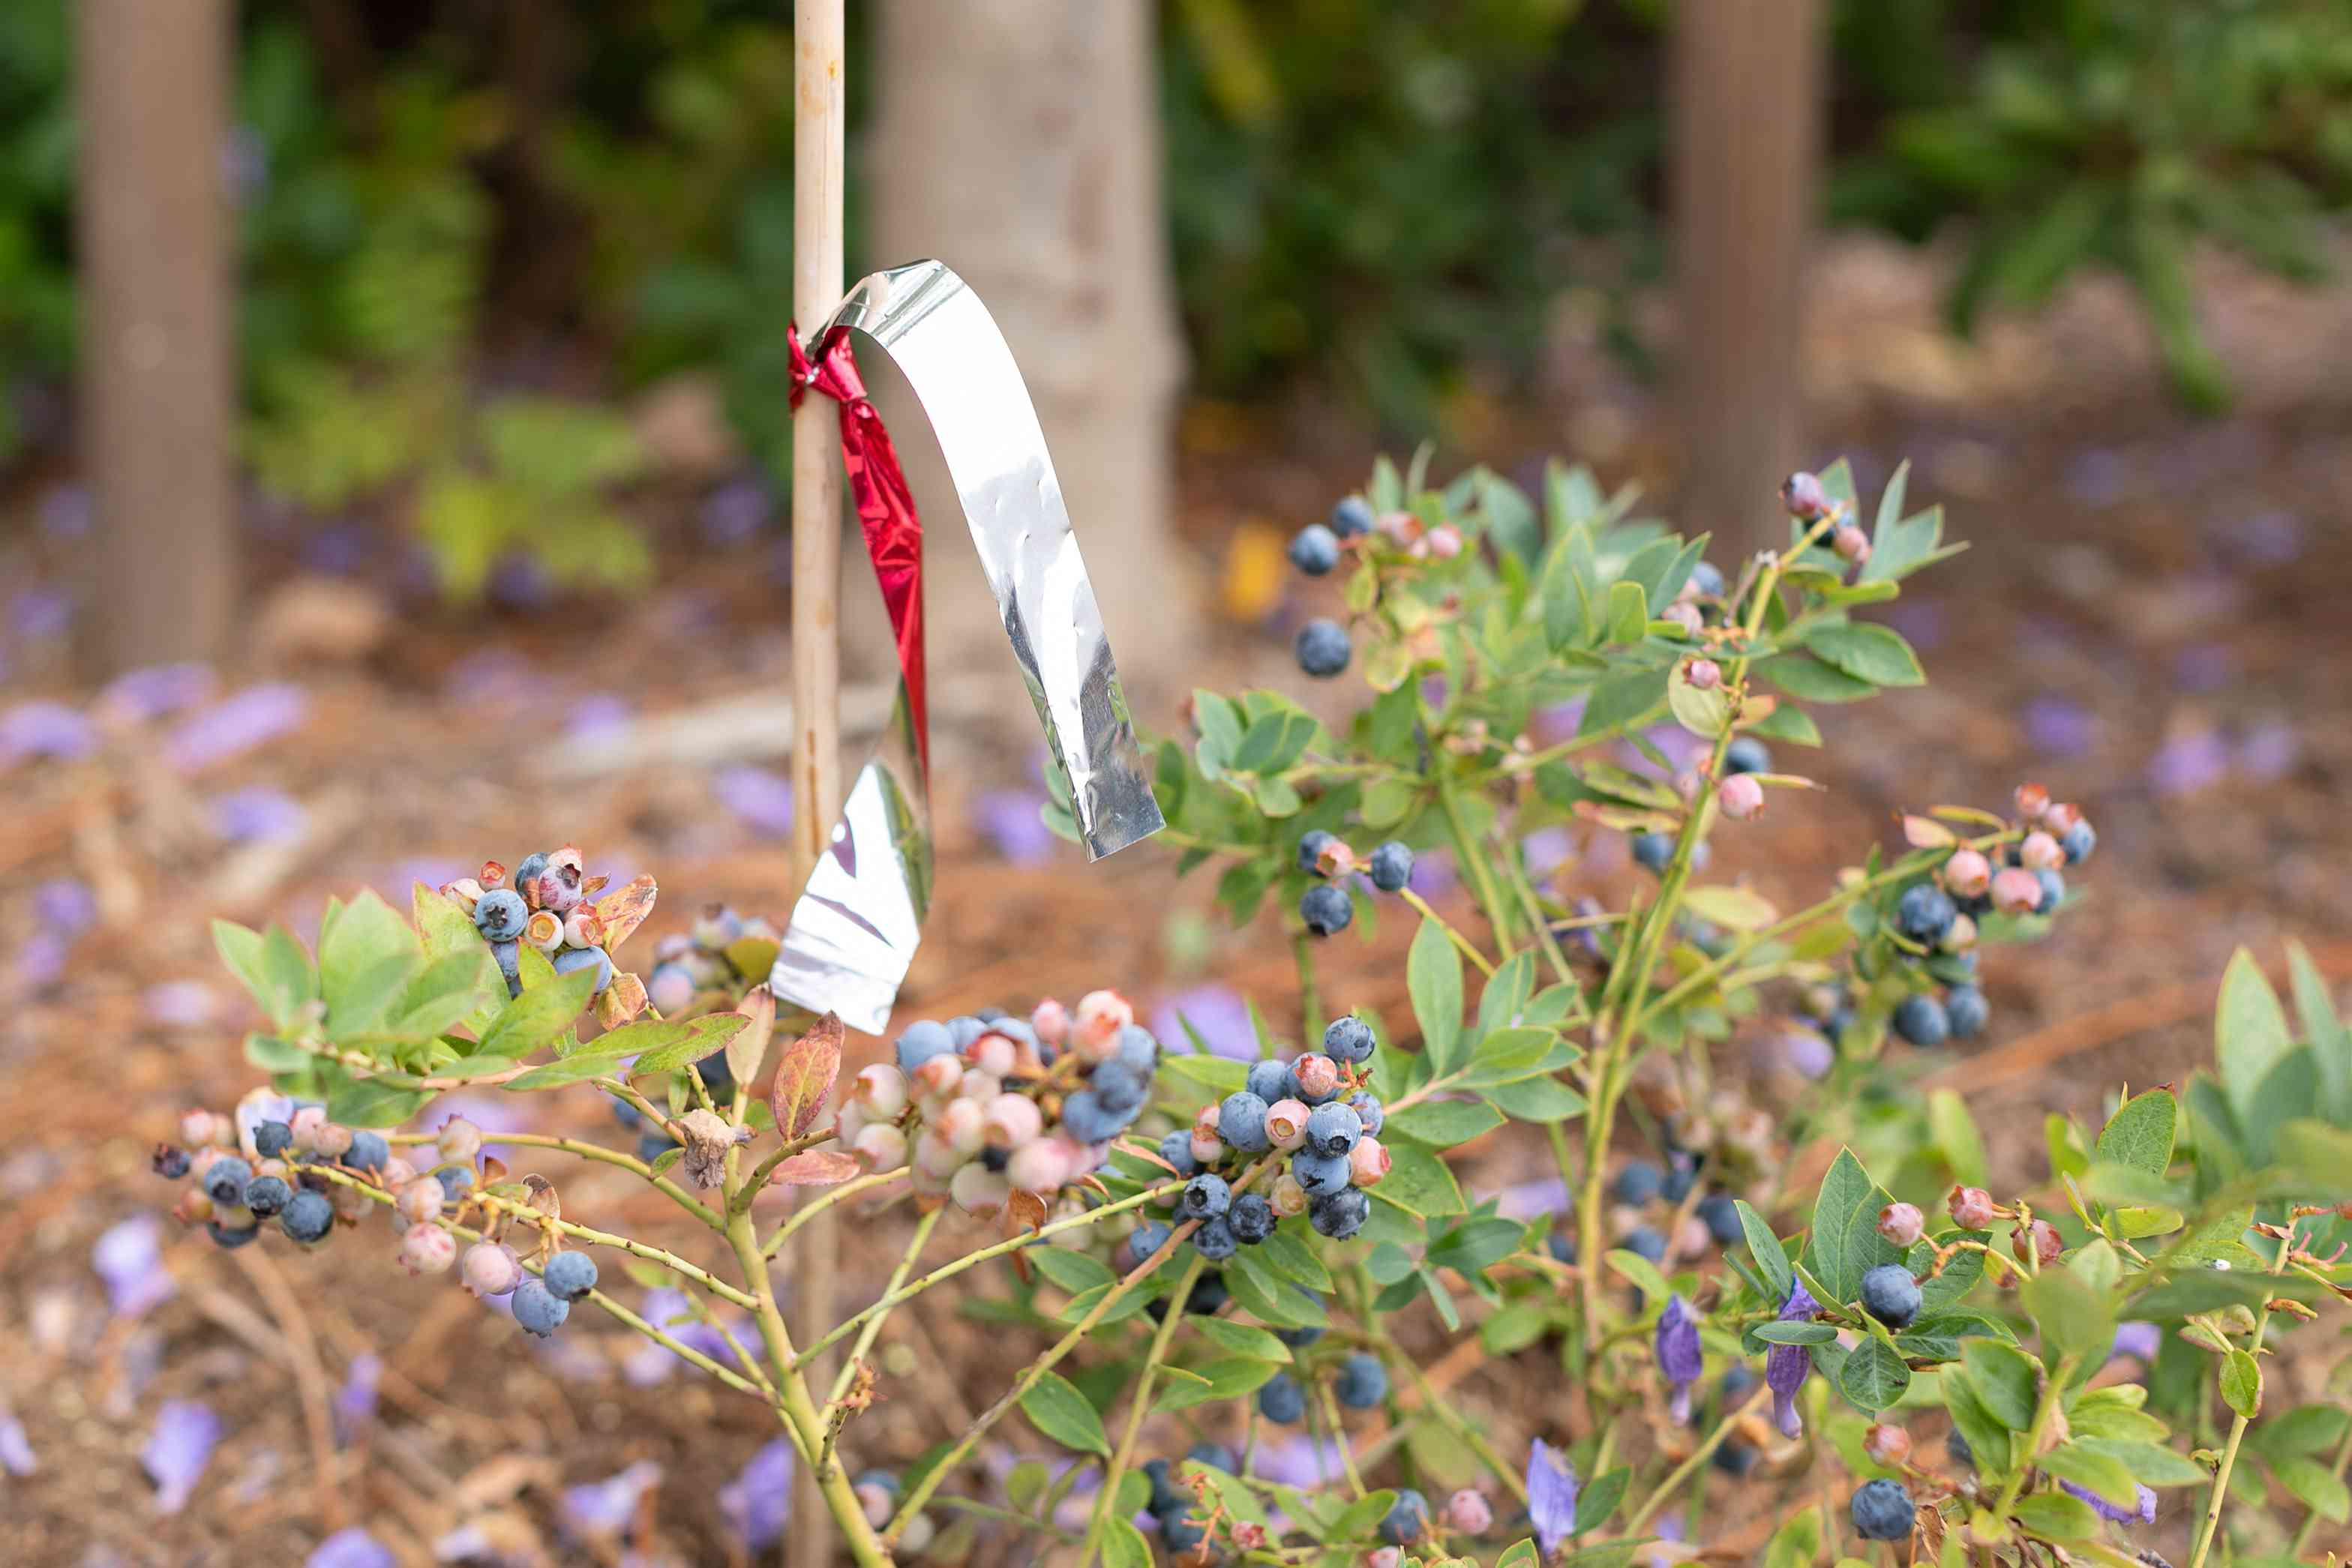 Flash tape tied to thin wooden pole to prevent birds from eating blueberry bush